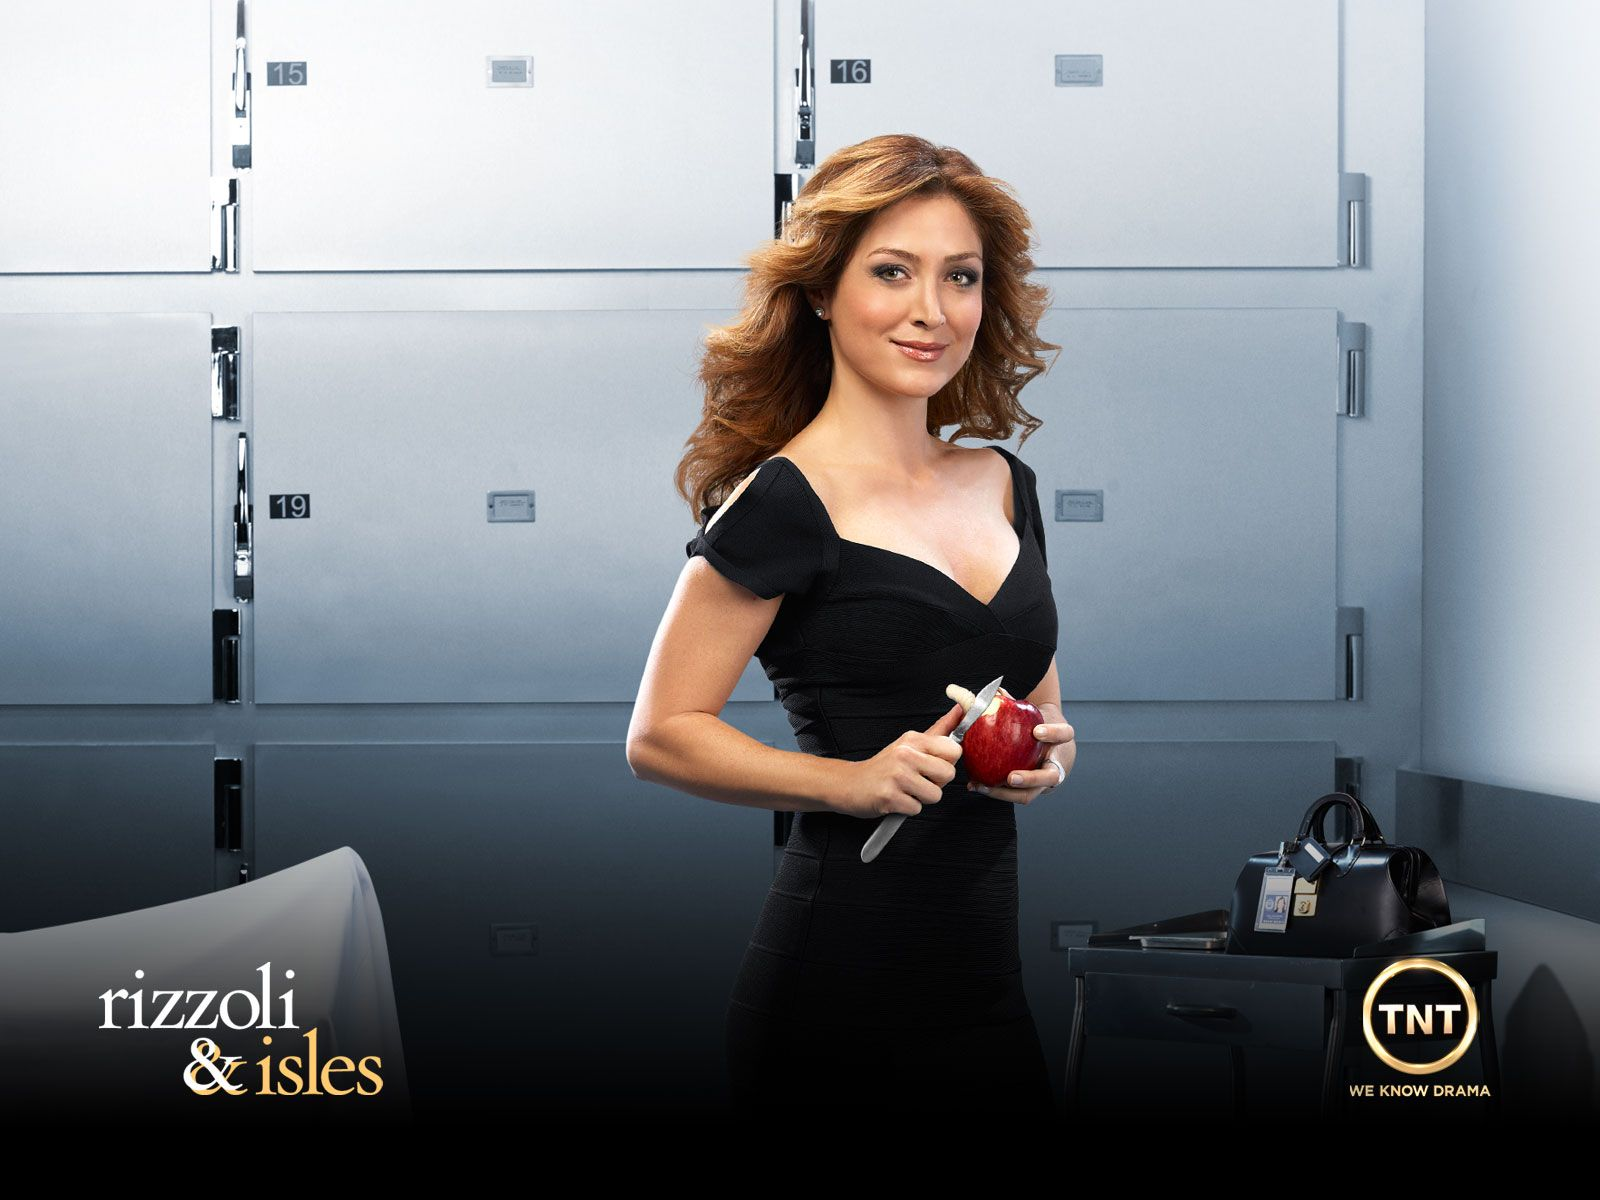 Google Image Result for http://tvpedia.org/wp-content/uploads/2011/08/rizzoli-and-isles-wallpaper-1.jpg